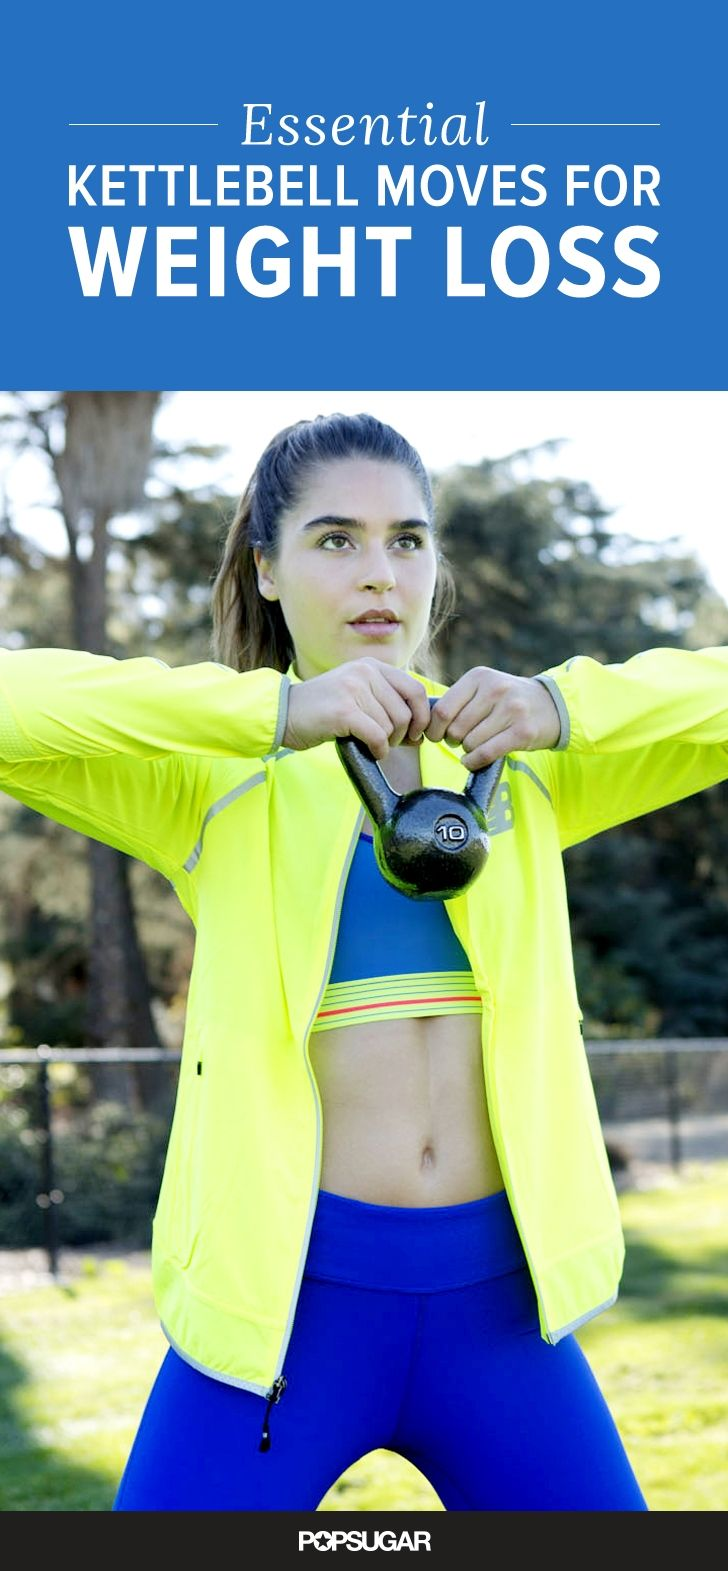 The amount of calories you can burn using kettlebells can be amazingly high: a study by the American Council on Exercise found that the average person burns 400 calories in 20 minutes when doing kettlebell exercises. Here are tips on how to get the most our of your kettlebell workouts.  Rapid weight loss! The best method in 2016! Absolutely safe and easy! #diet #weightlosemotivation #weightlosesmoothies #weightloseformen